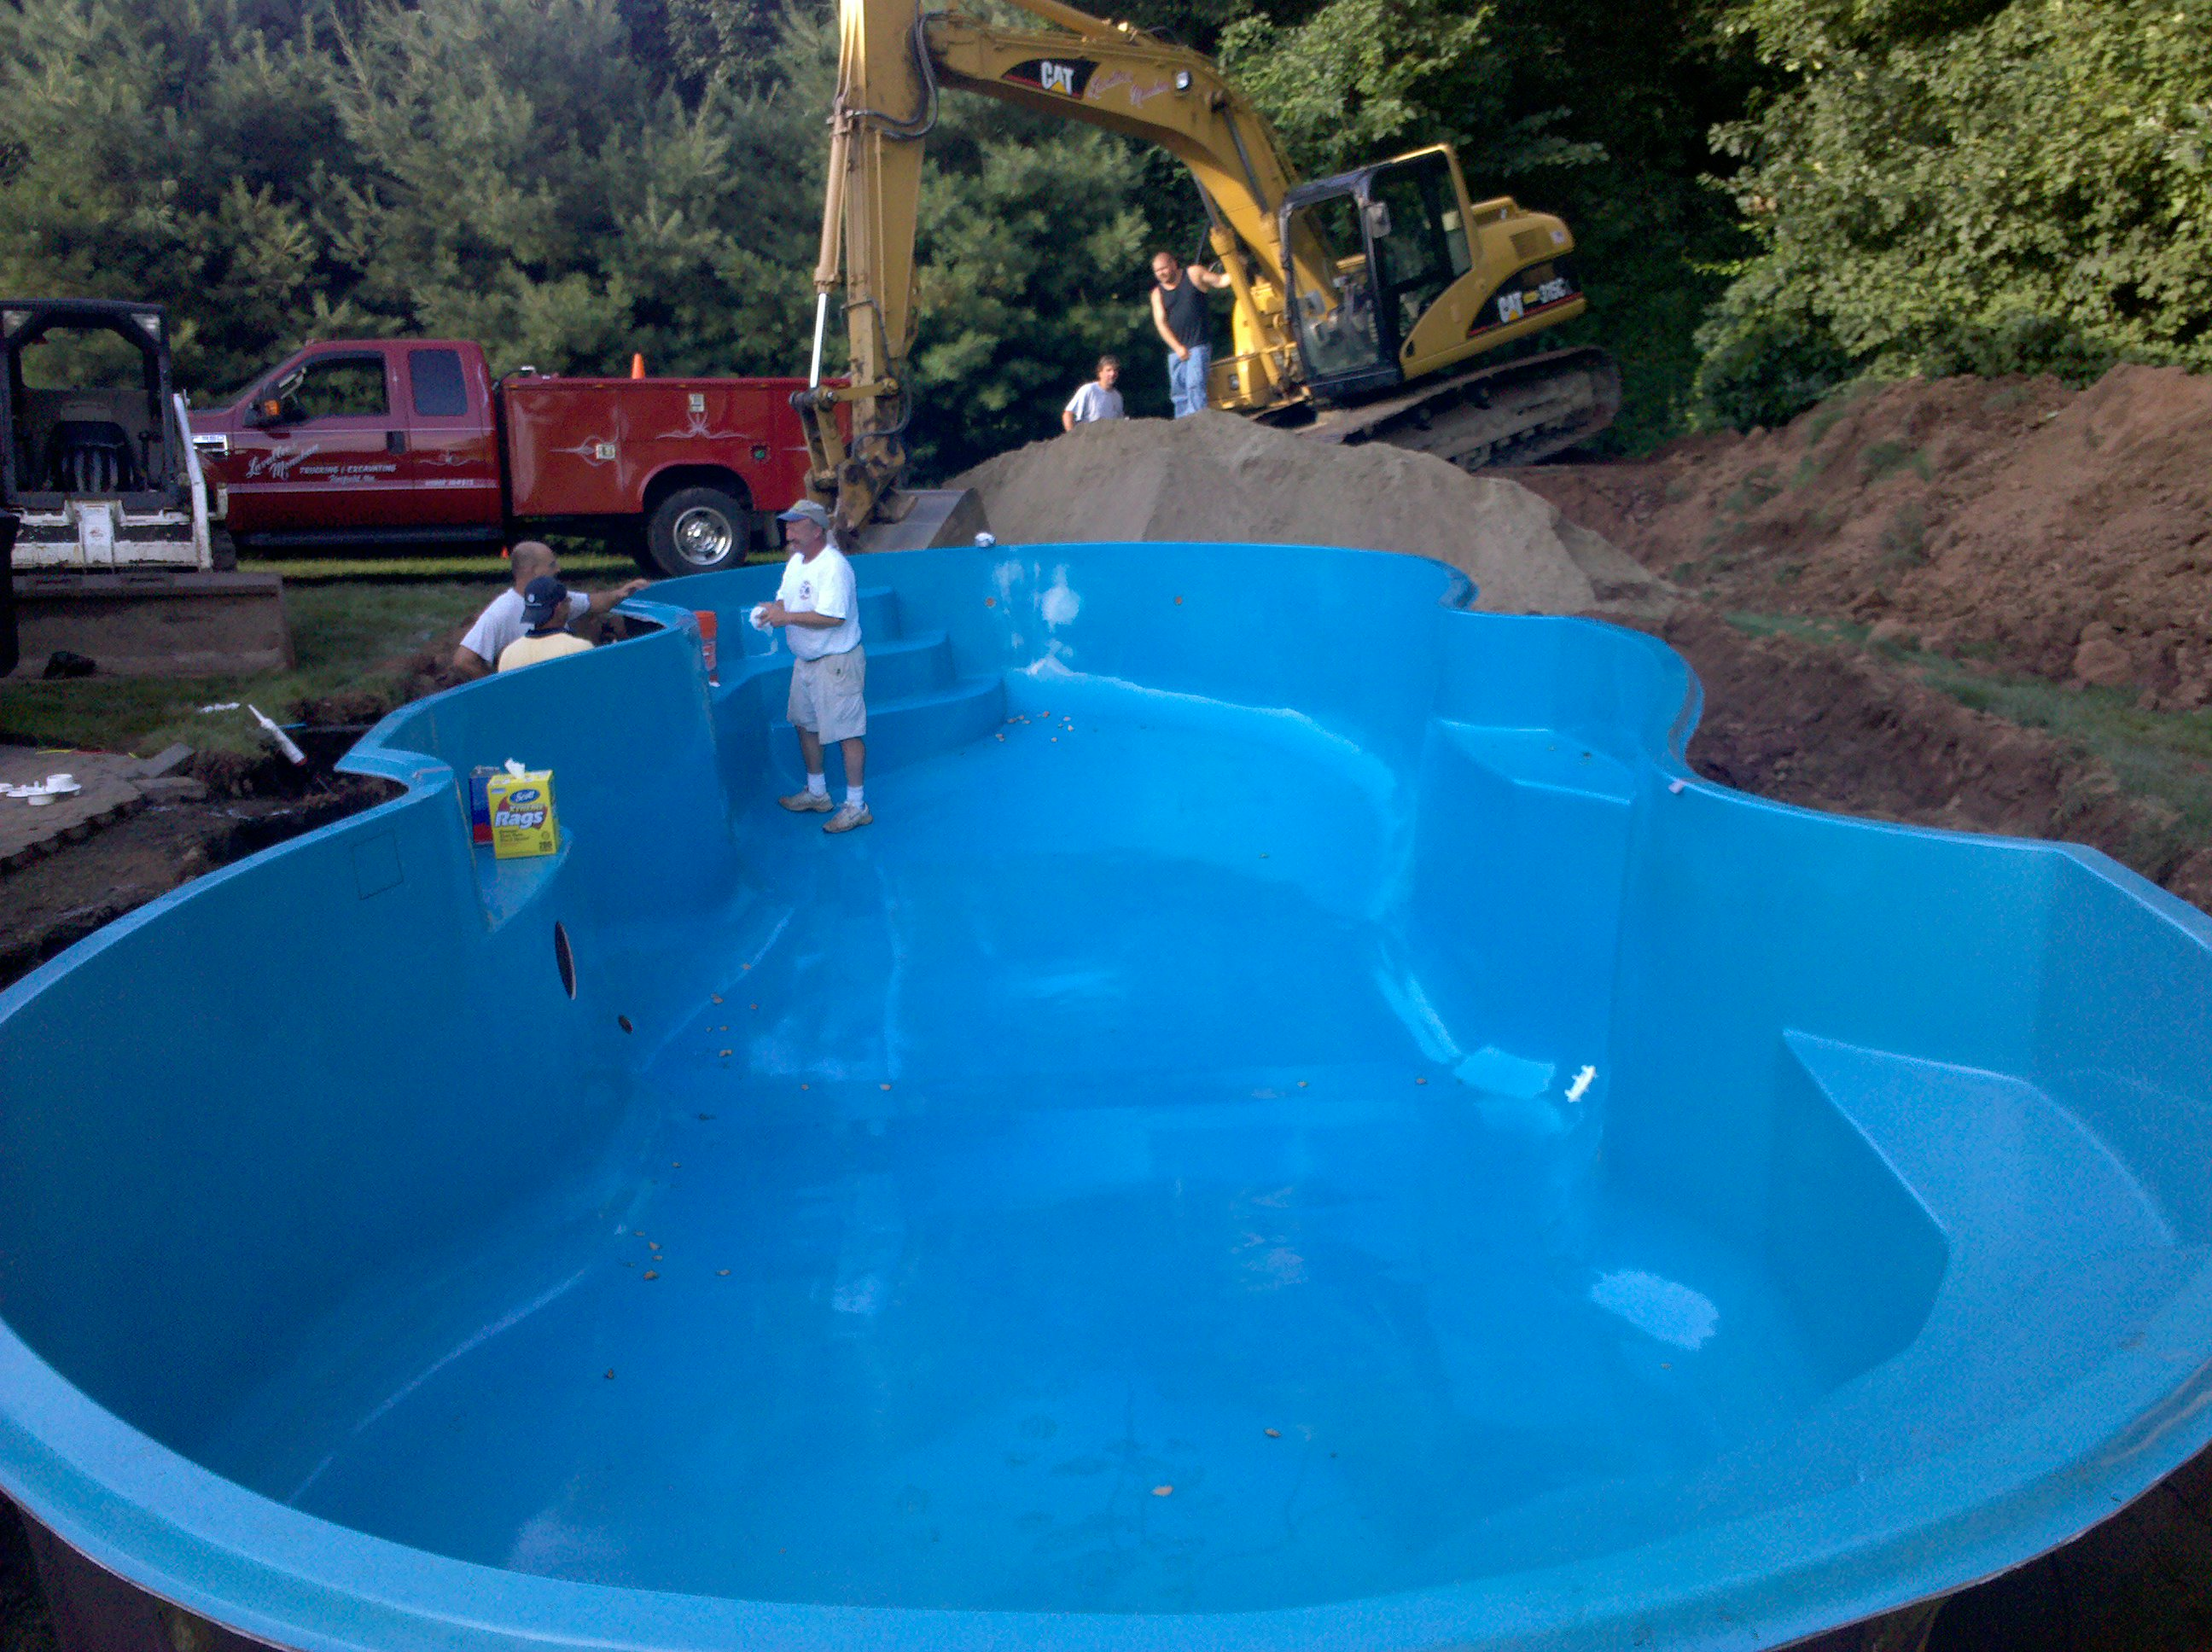 Preferred Properties Landscaping Installed This San Juan Mirage Pool In Just Two Days 396 Ft Seafoam Green Fiberglass Arrived Onsite